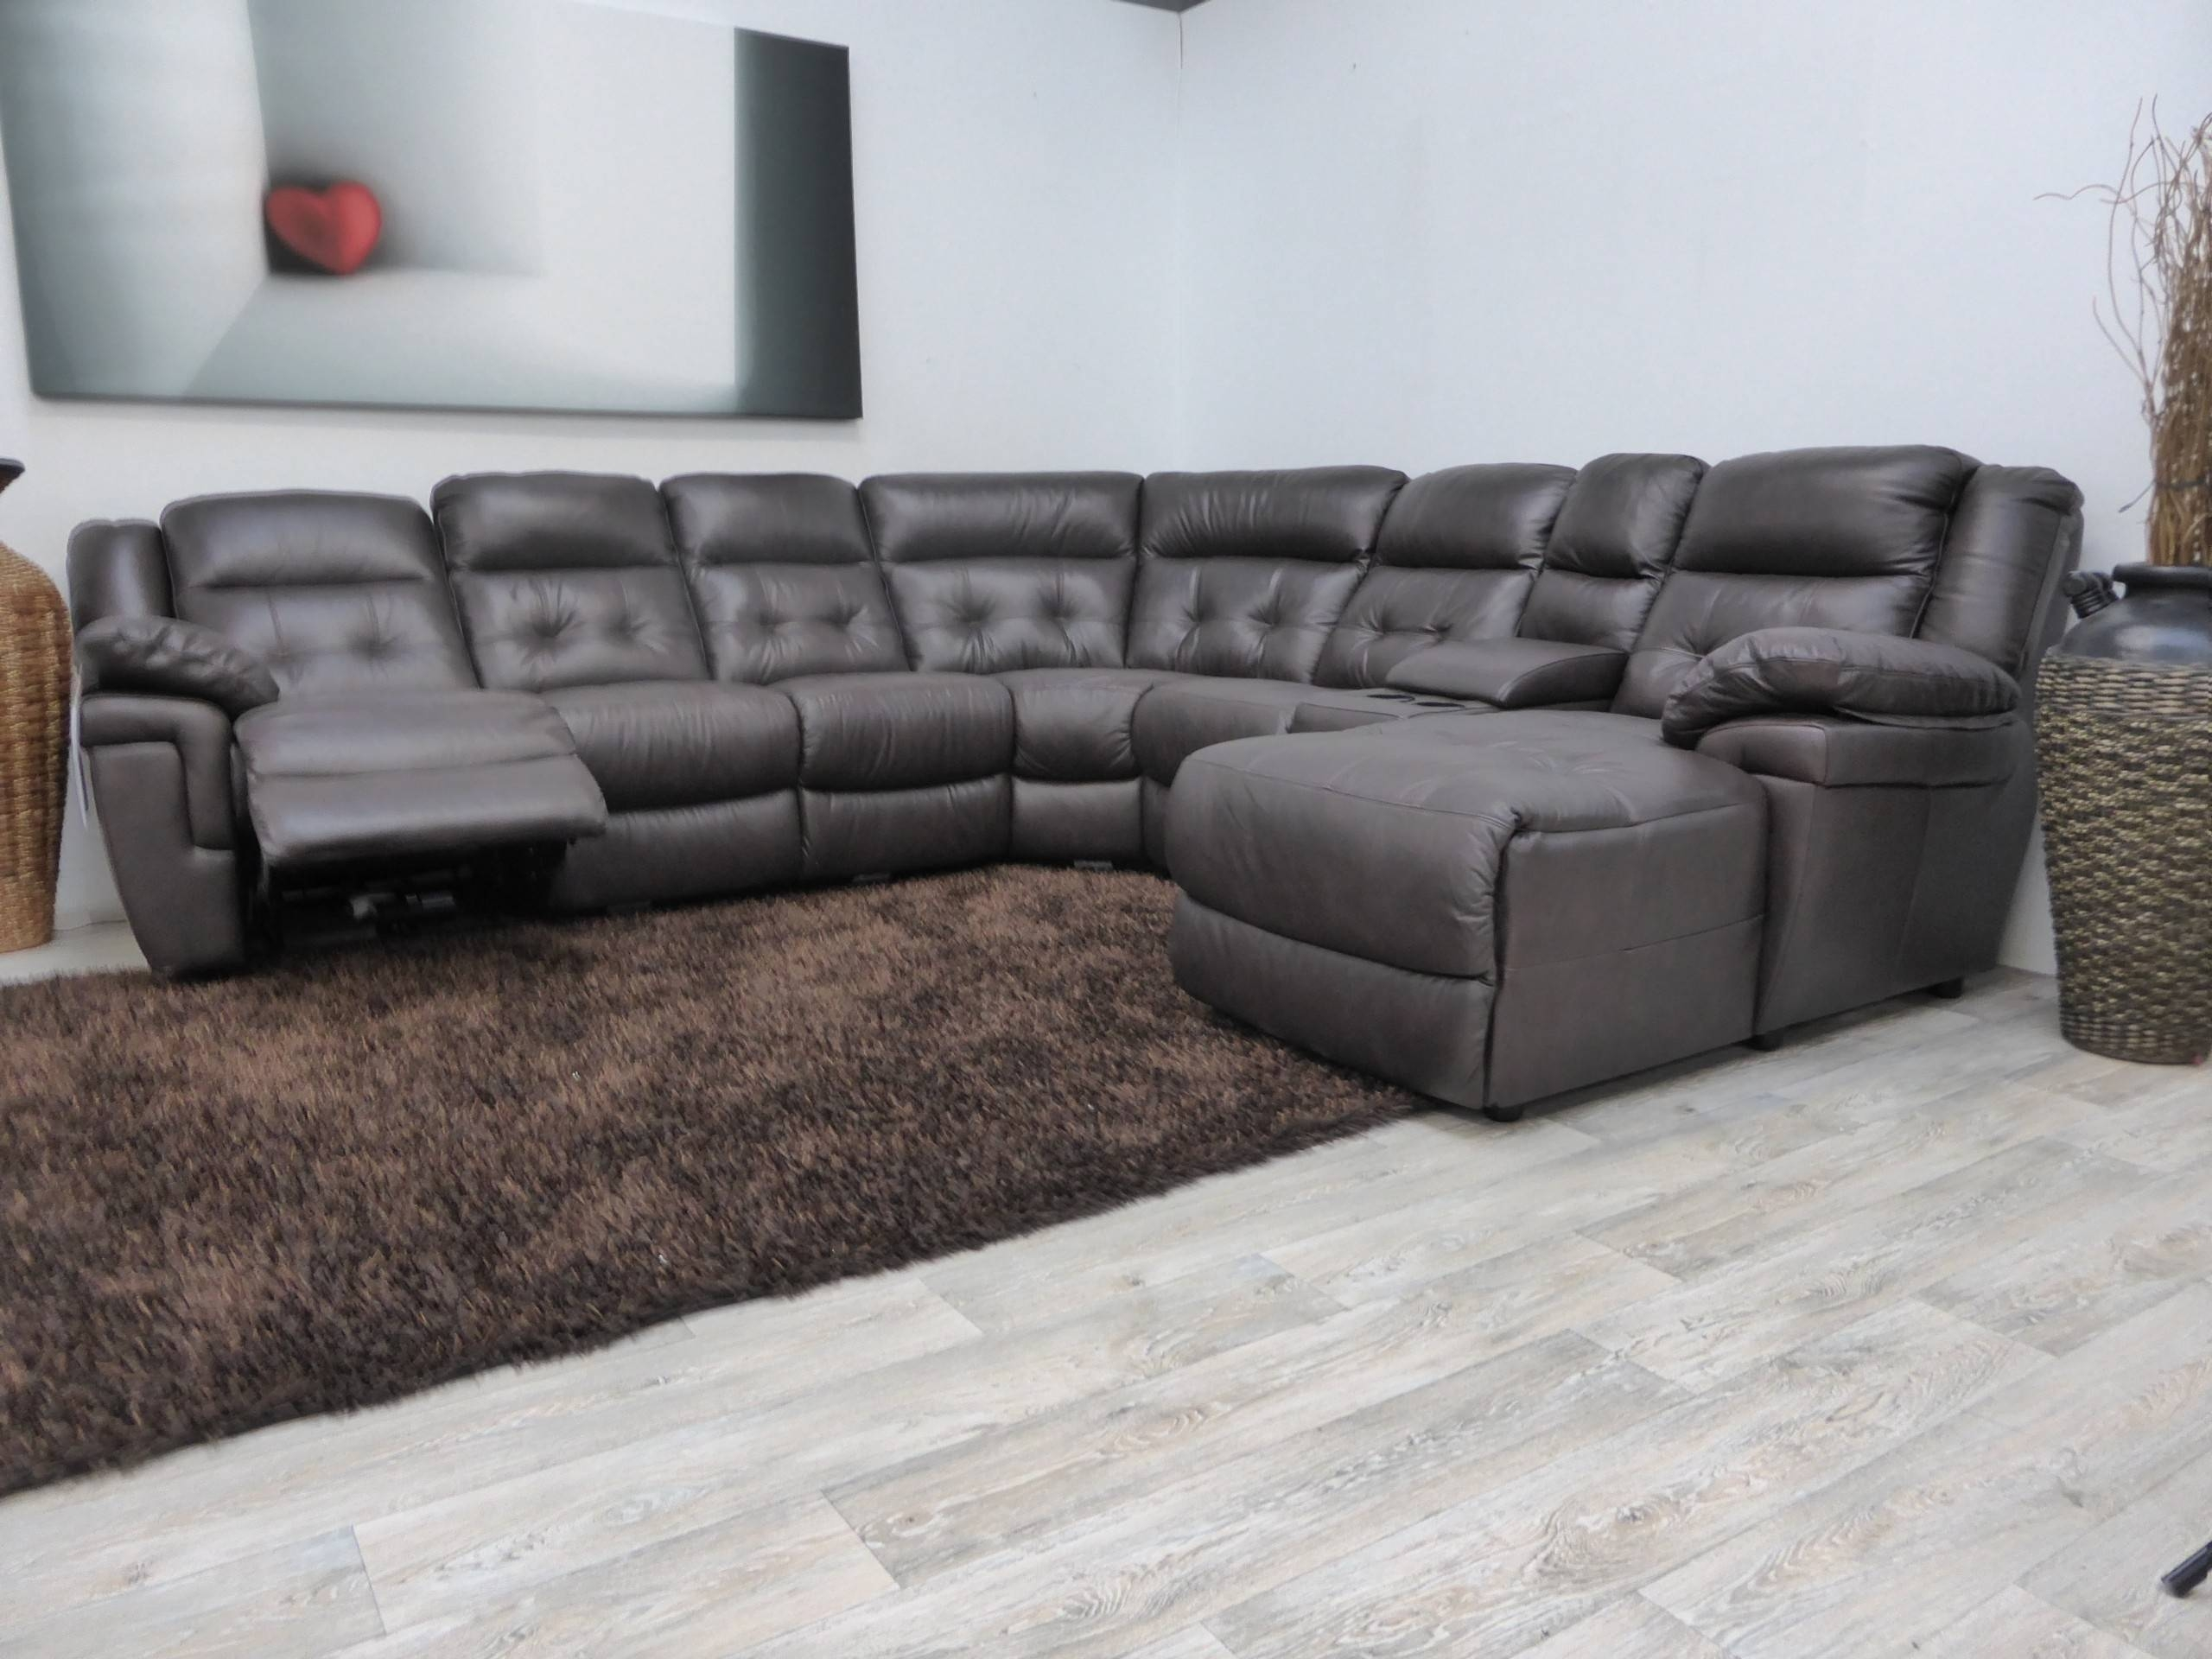 12 Best Collection Of Craigslist Sectional Sofa regarding Craigslist Sectional Sofa (Image 1 of 30)